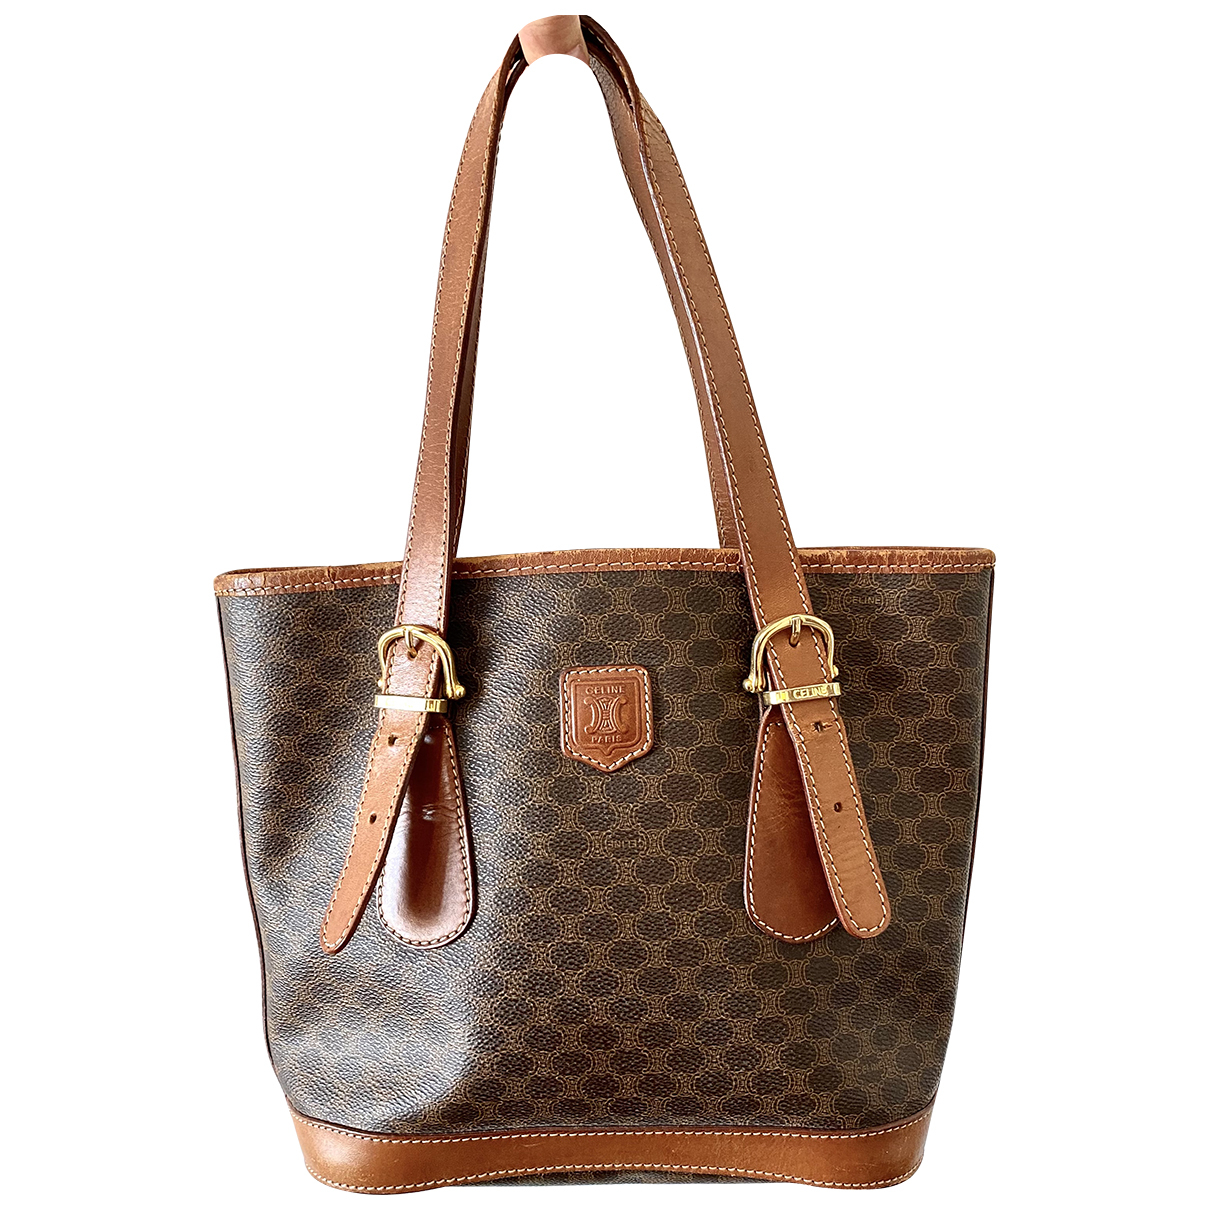 Celine Made In Tote Bag leather tote